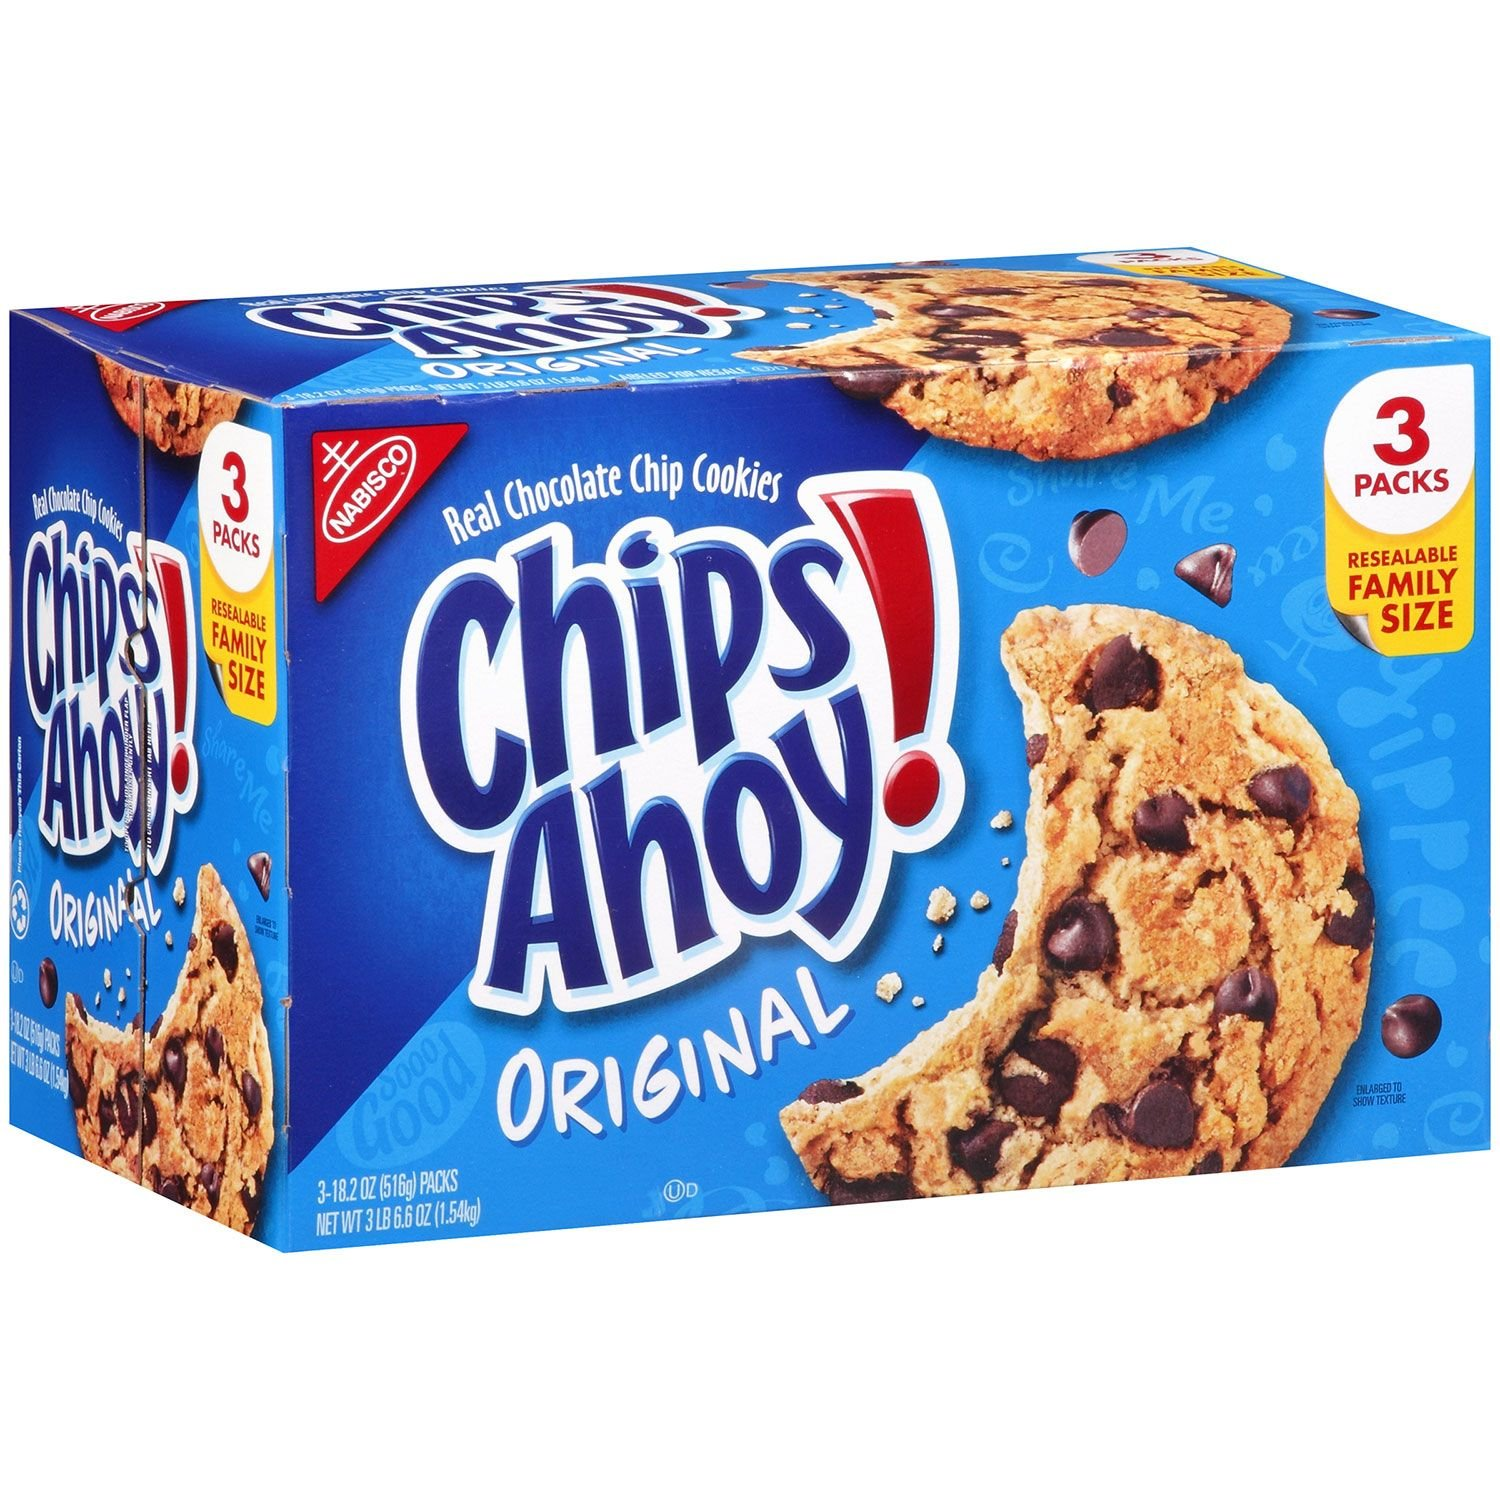 Chips Ahoy! Original Chocolate Chip Cookies - Family Size Bulk Pack with 3 Resealable Packages, 54.6 Ounce by Chips Ahoy!